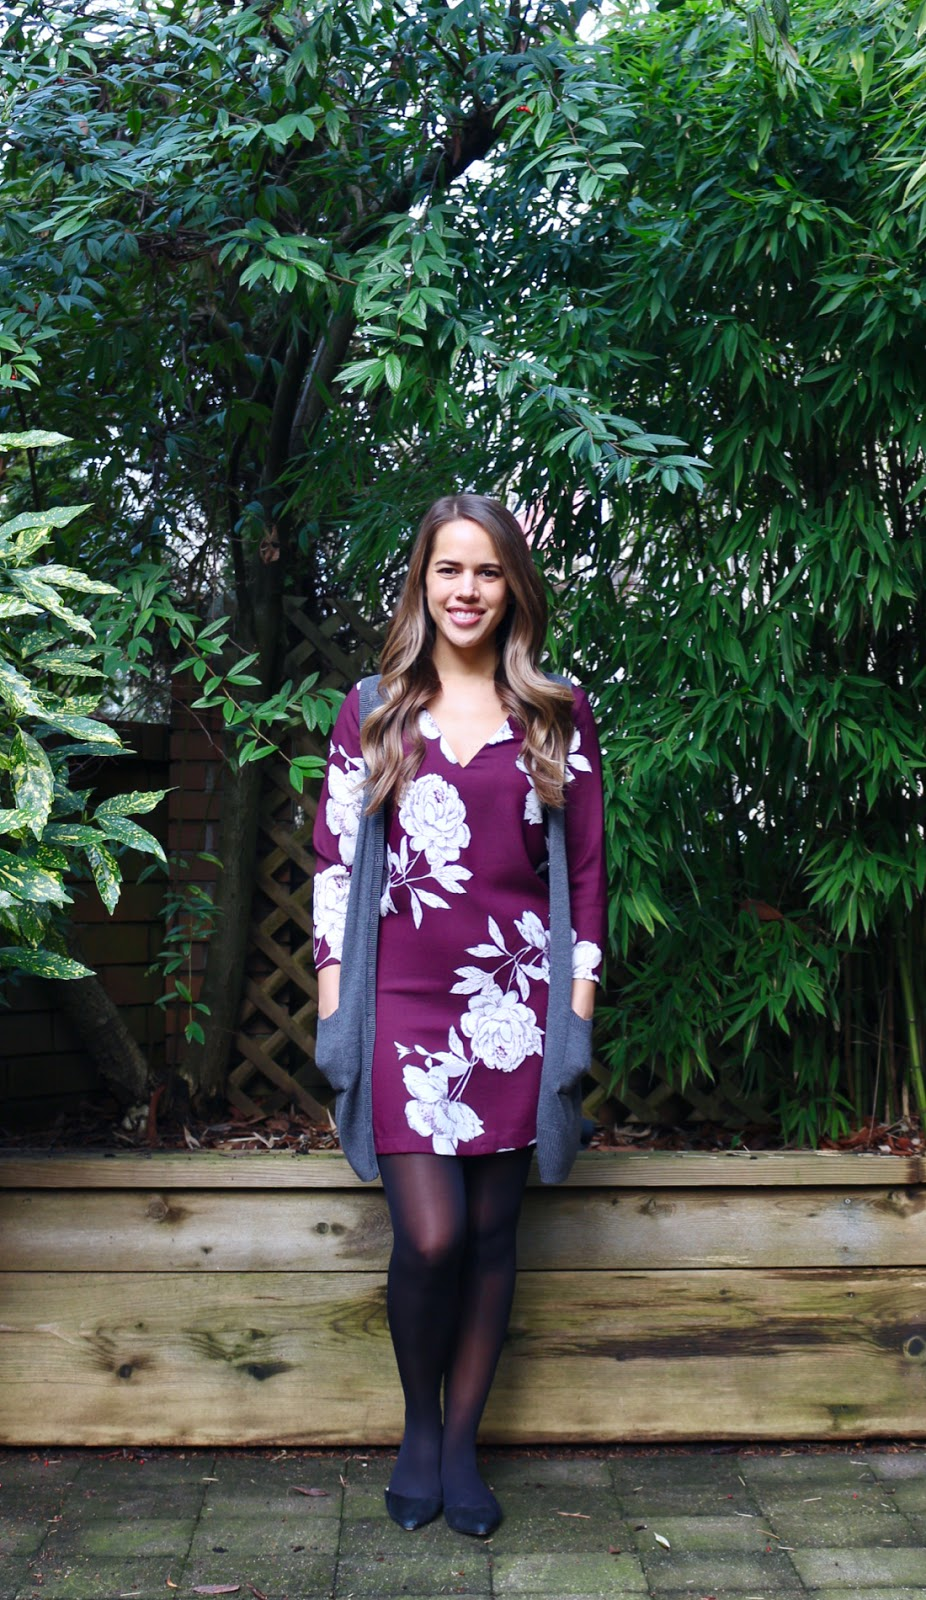 Jules in Flats - Floral Shift Dress with Sweater Vest (Business Casual Winter Workwear on a Budget)